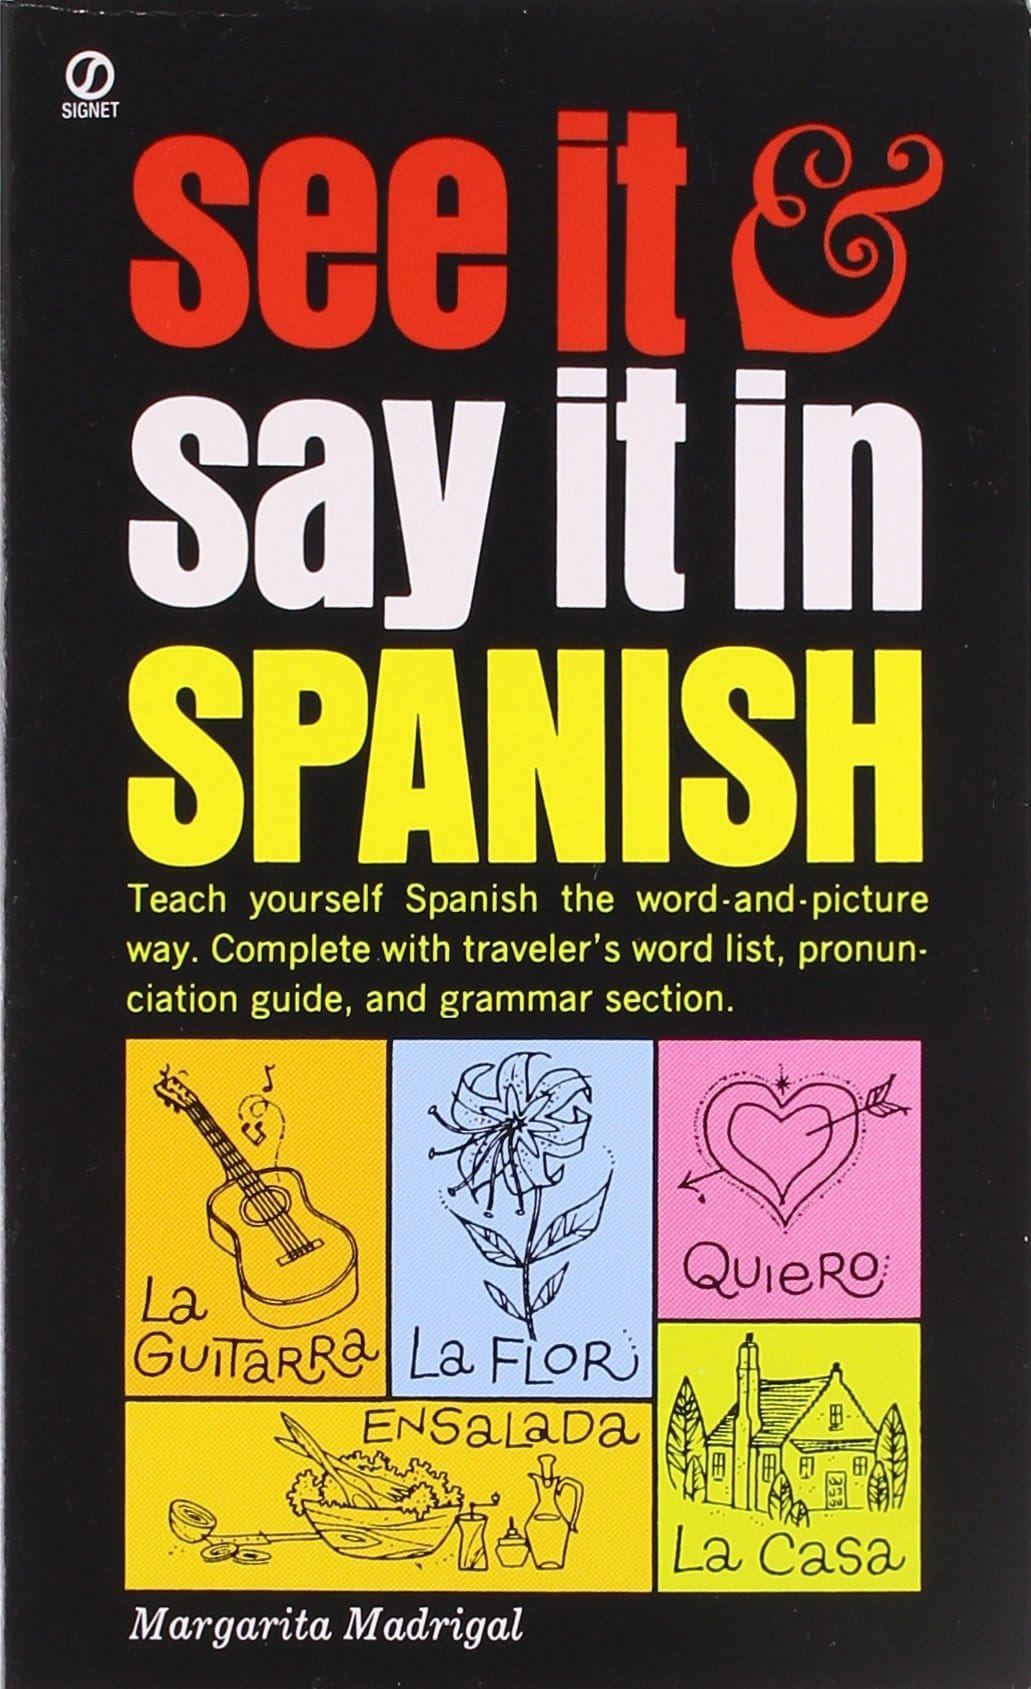 Pictures Spanish For Cute Girl: The 8 Best Books For Learning Spanish Inside And Out